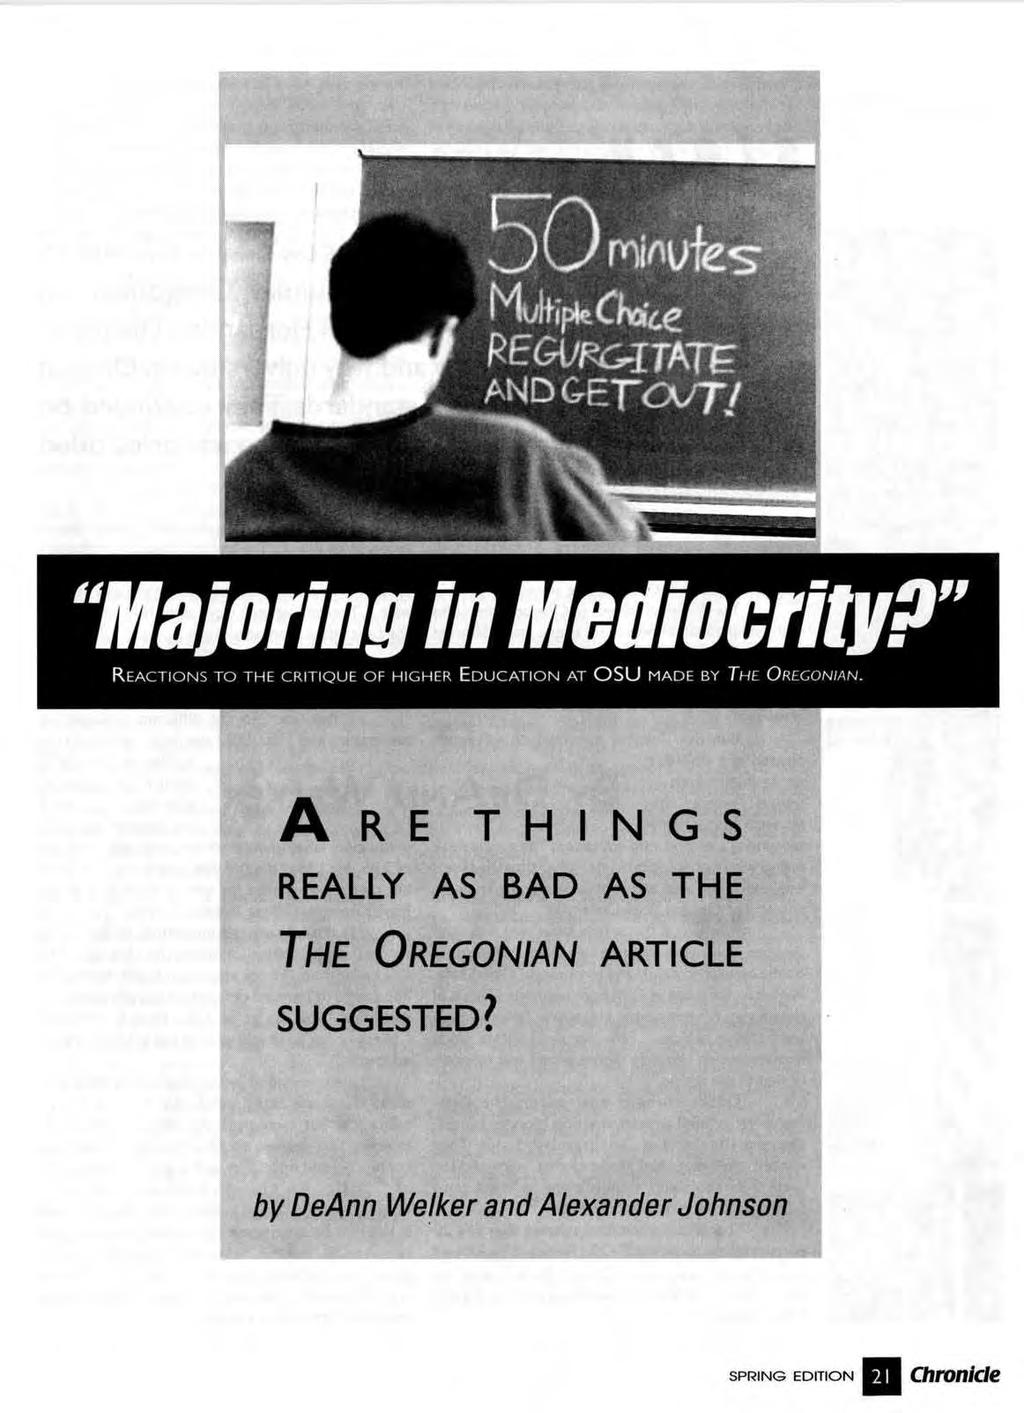 """Majoring in MeUiocritvP"" REACTIONS TO THE CRITIQUE OF HIGHER EDUCATION AT OSU MADE BY Ti-c OREGONIAN."